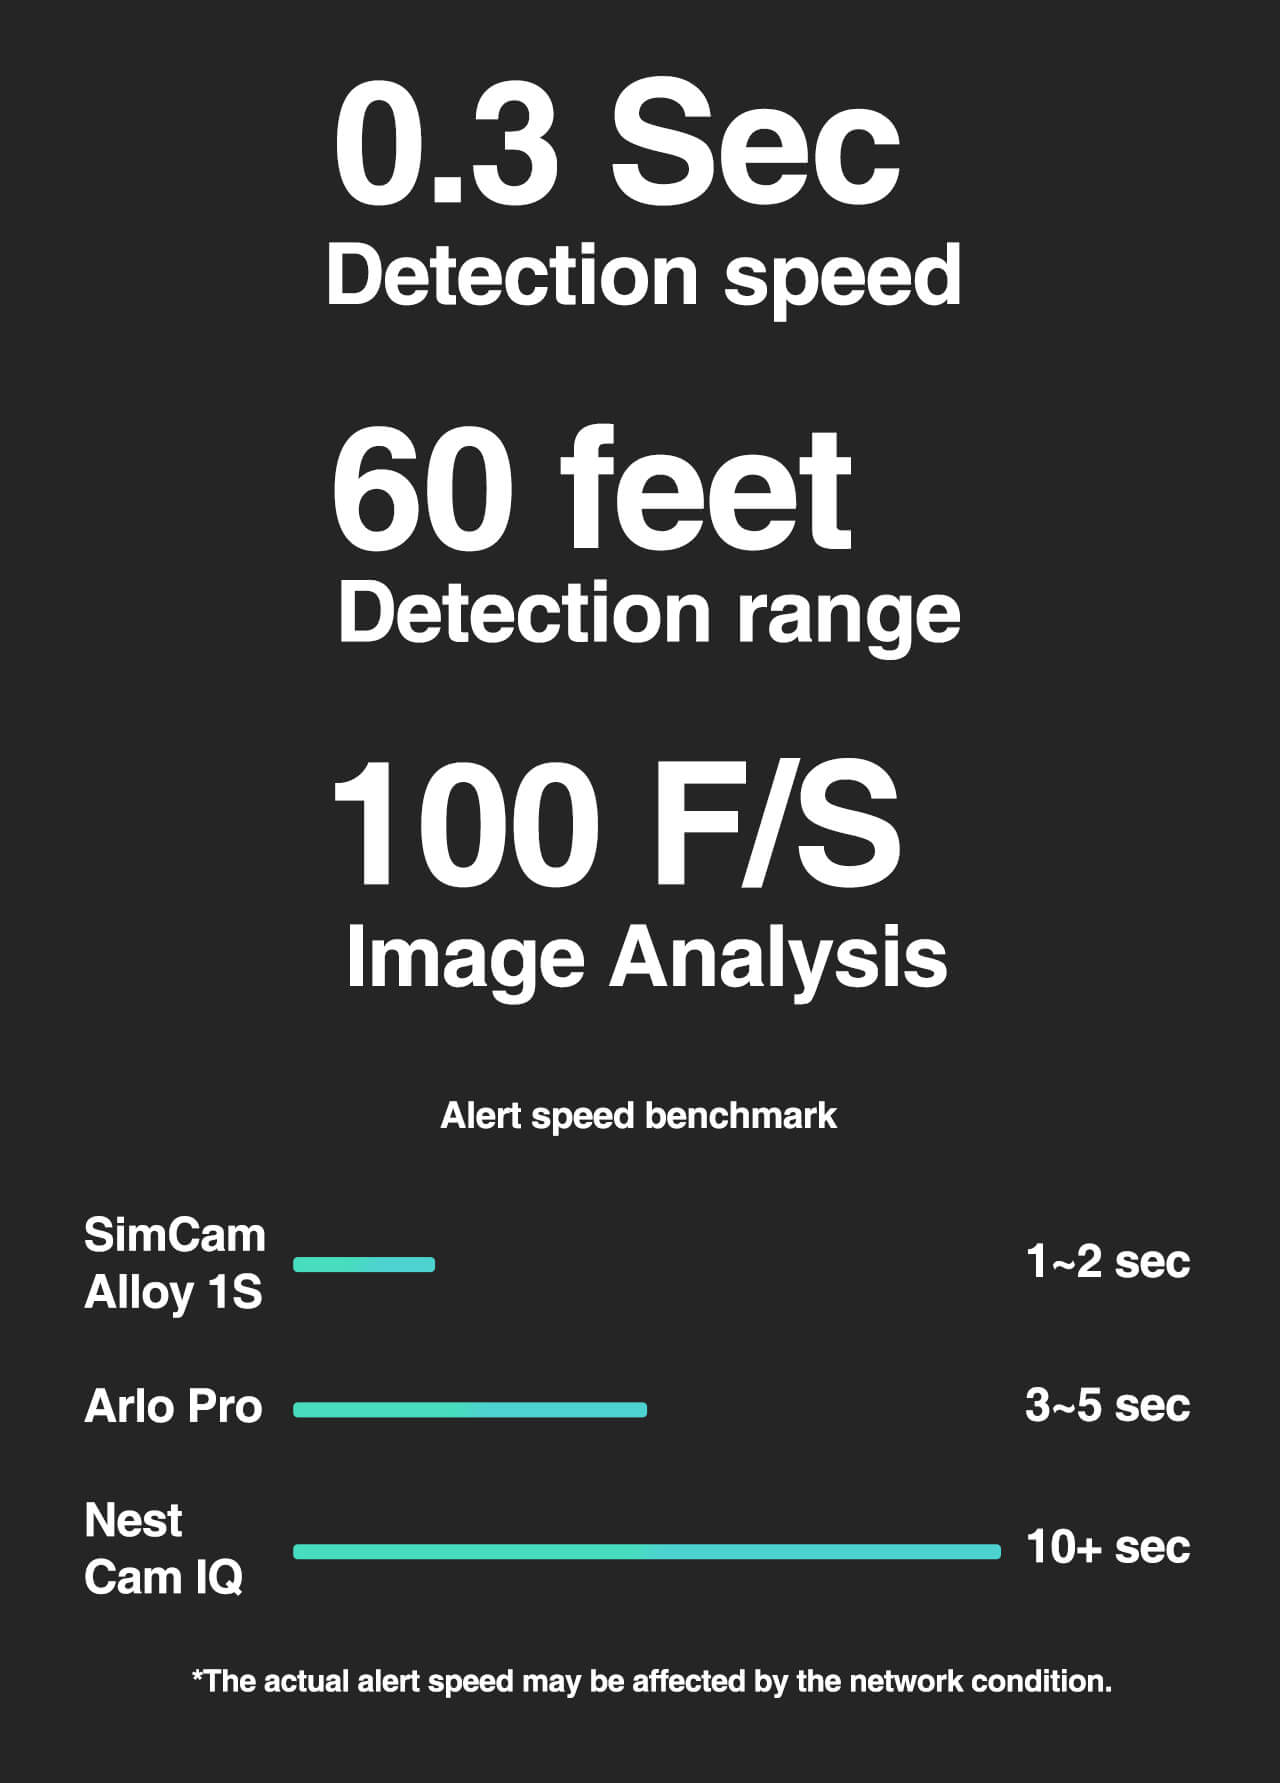 SimCam Alloy 1S No detection delay